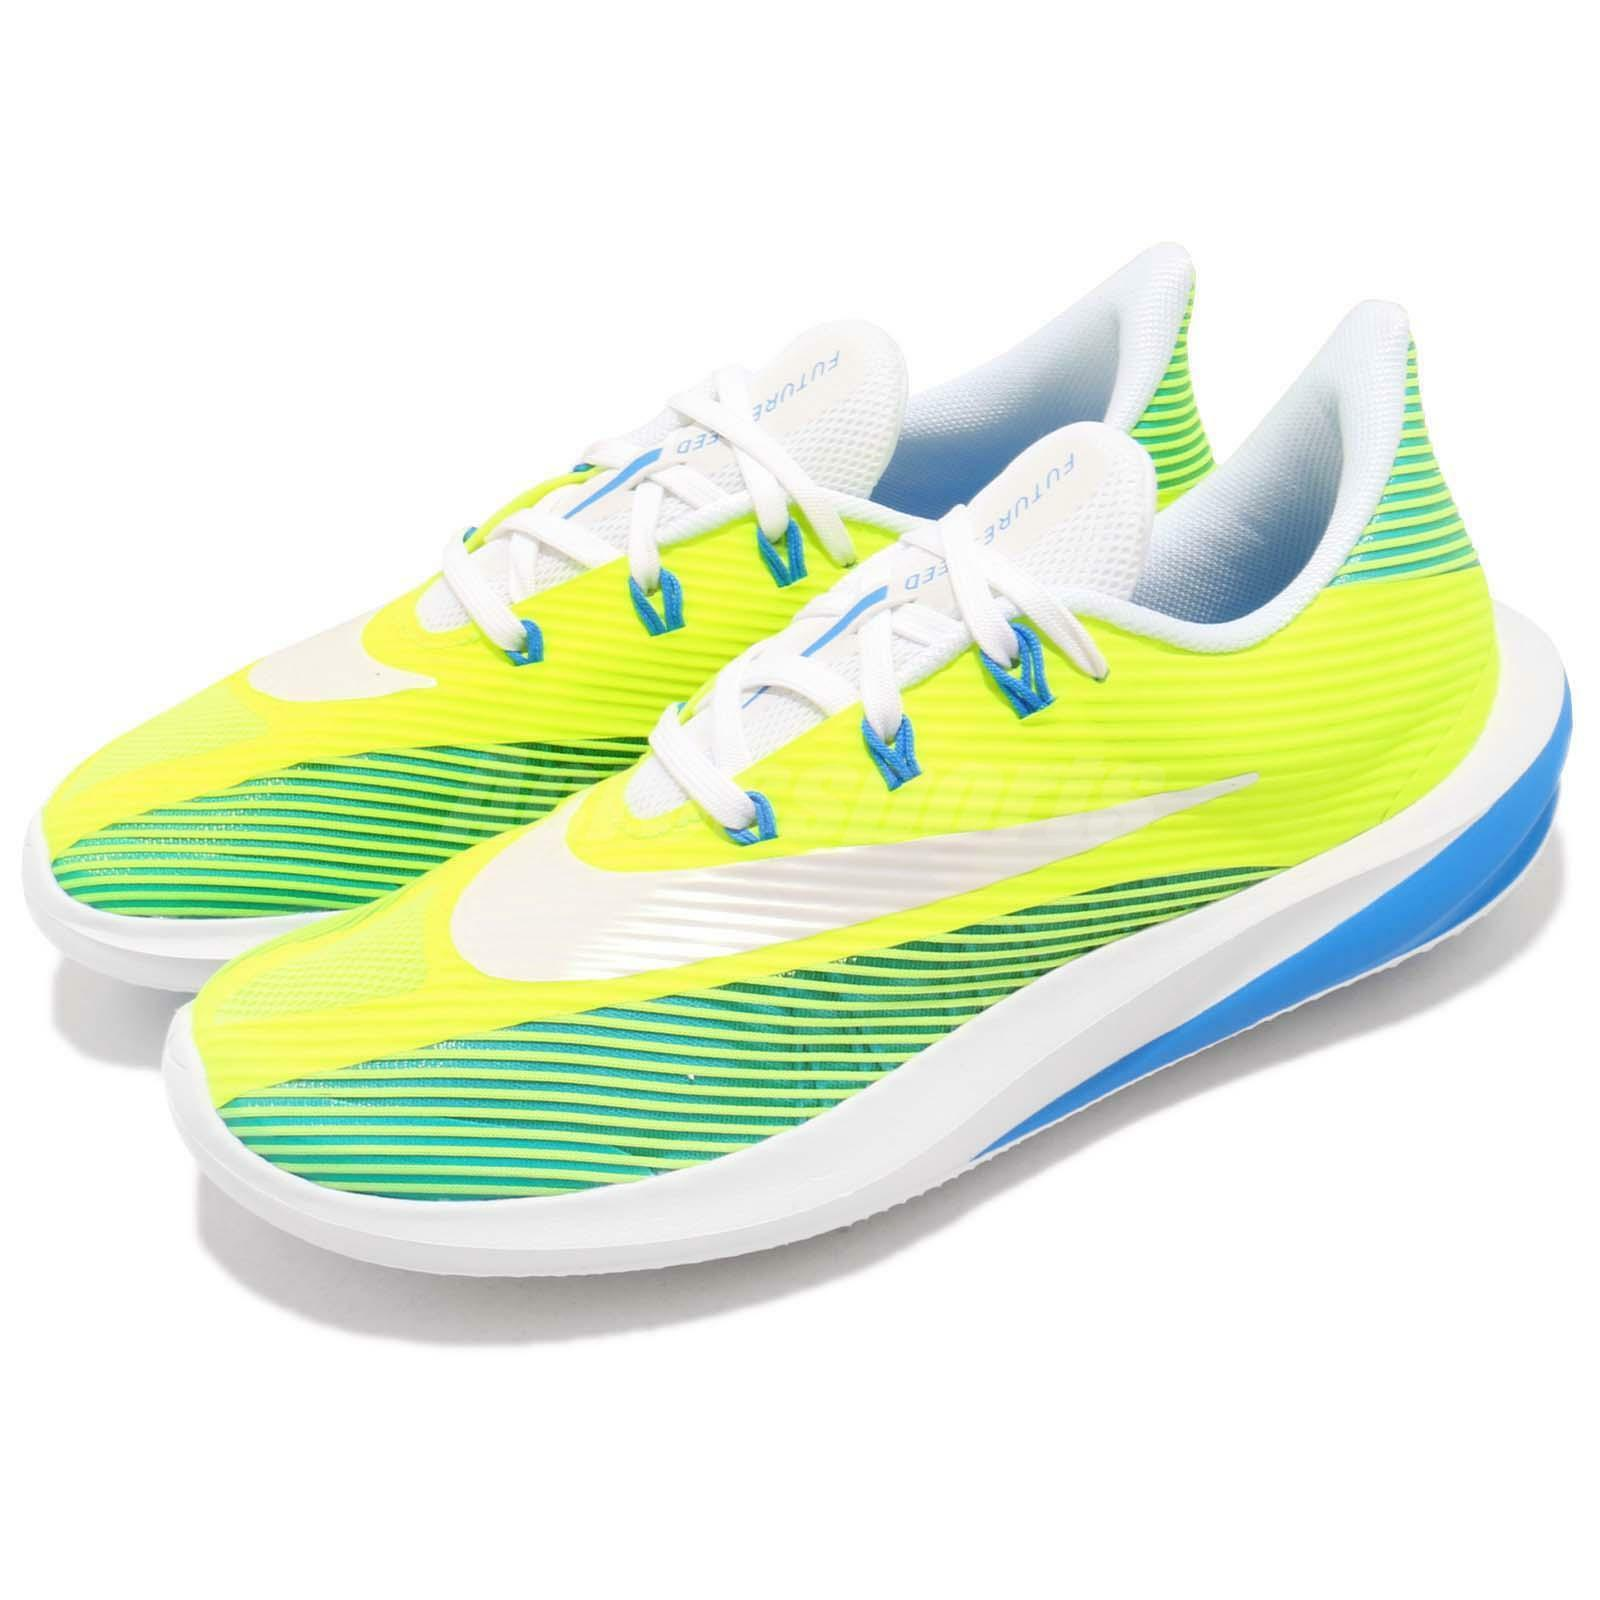 Nike Future Speed GS Volt White Blue Kid Youth Women Running Shoes AH3431-700